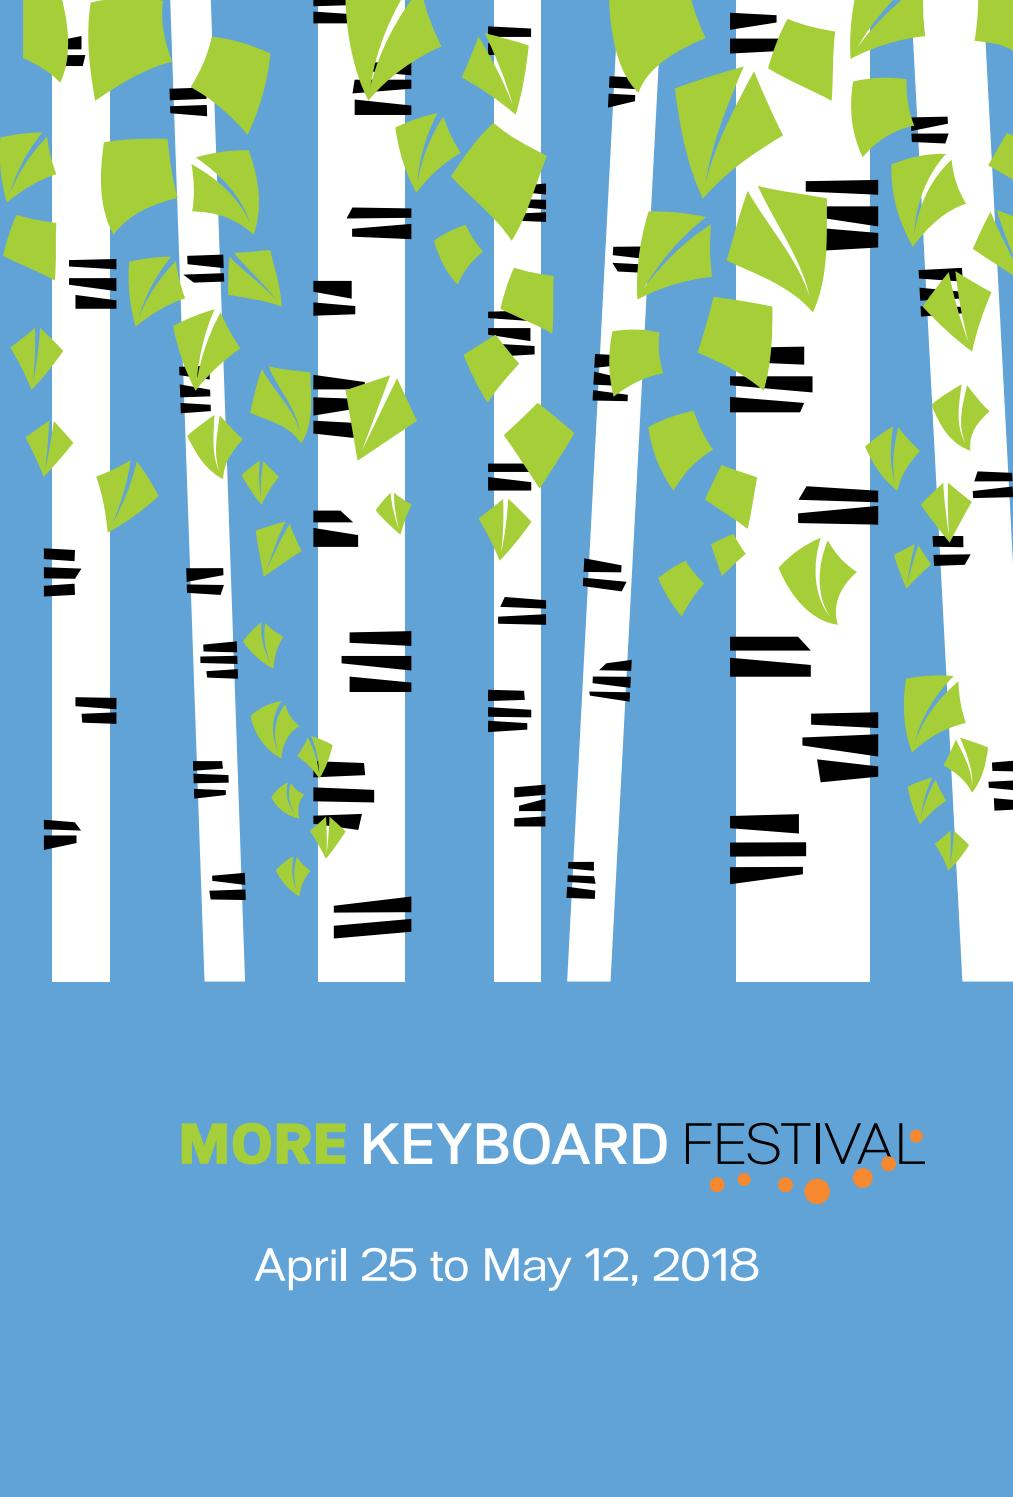 Gilmore Keyboard Festival 2018 program book by Curtis Cunningham - issuu